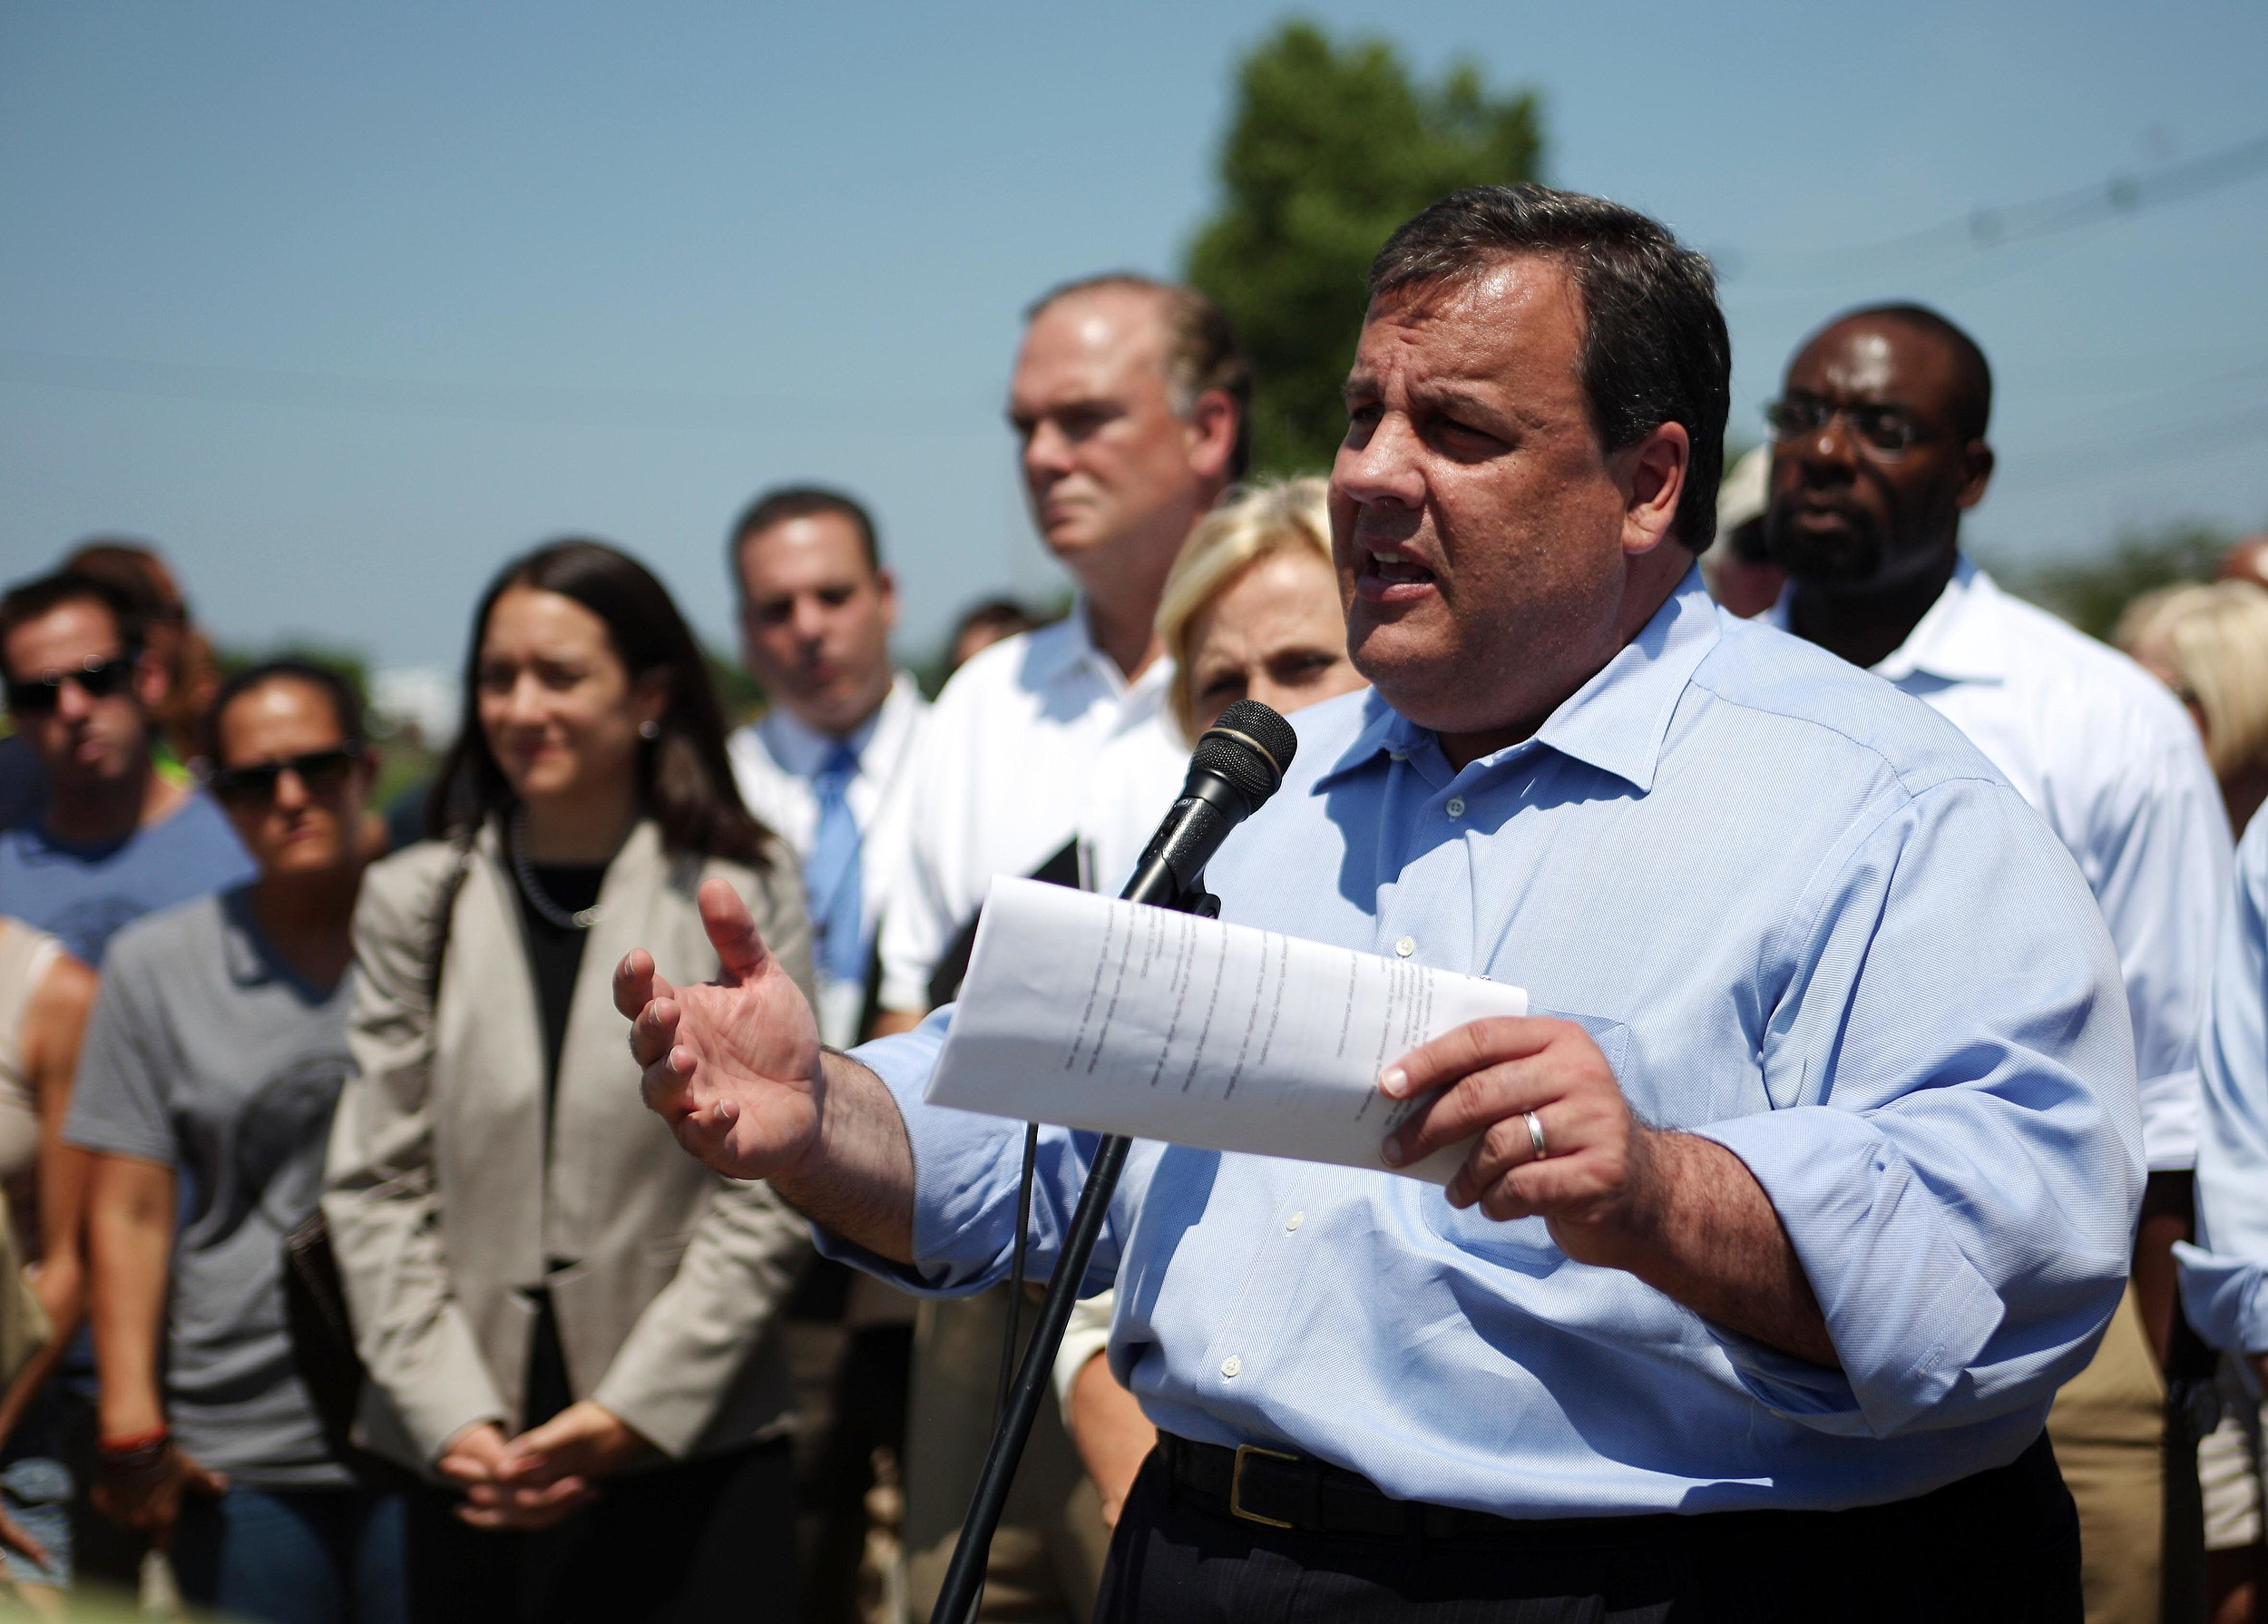 Christie's Temper Caught On Tape On Jersey Shore